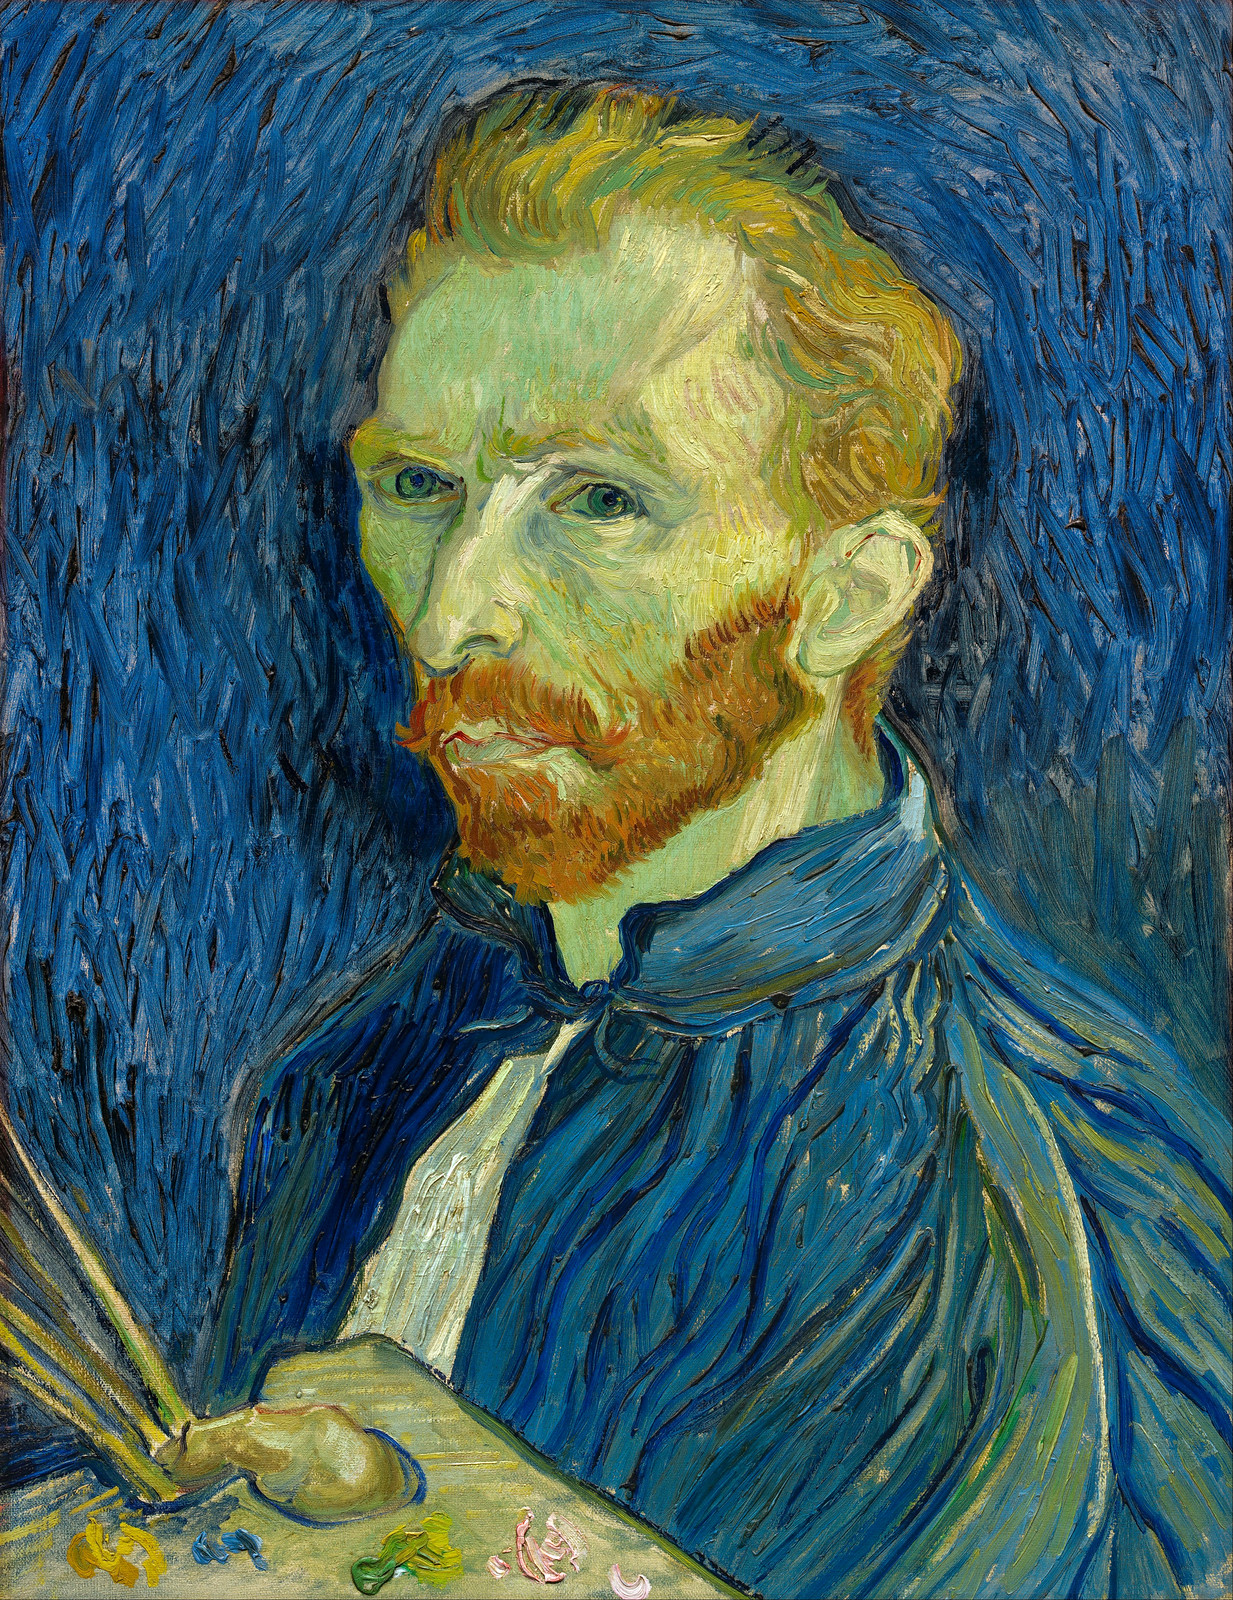 Vincent van Gogh Self-portrait, 1889